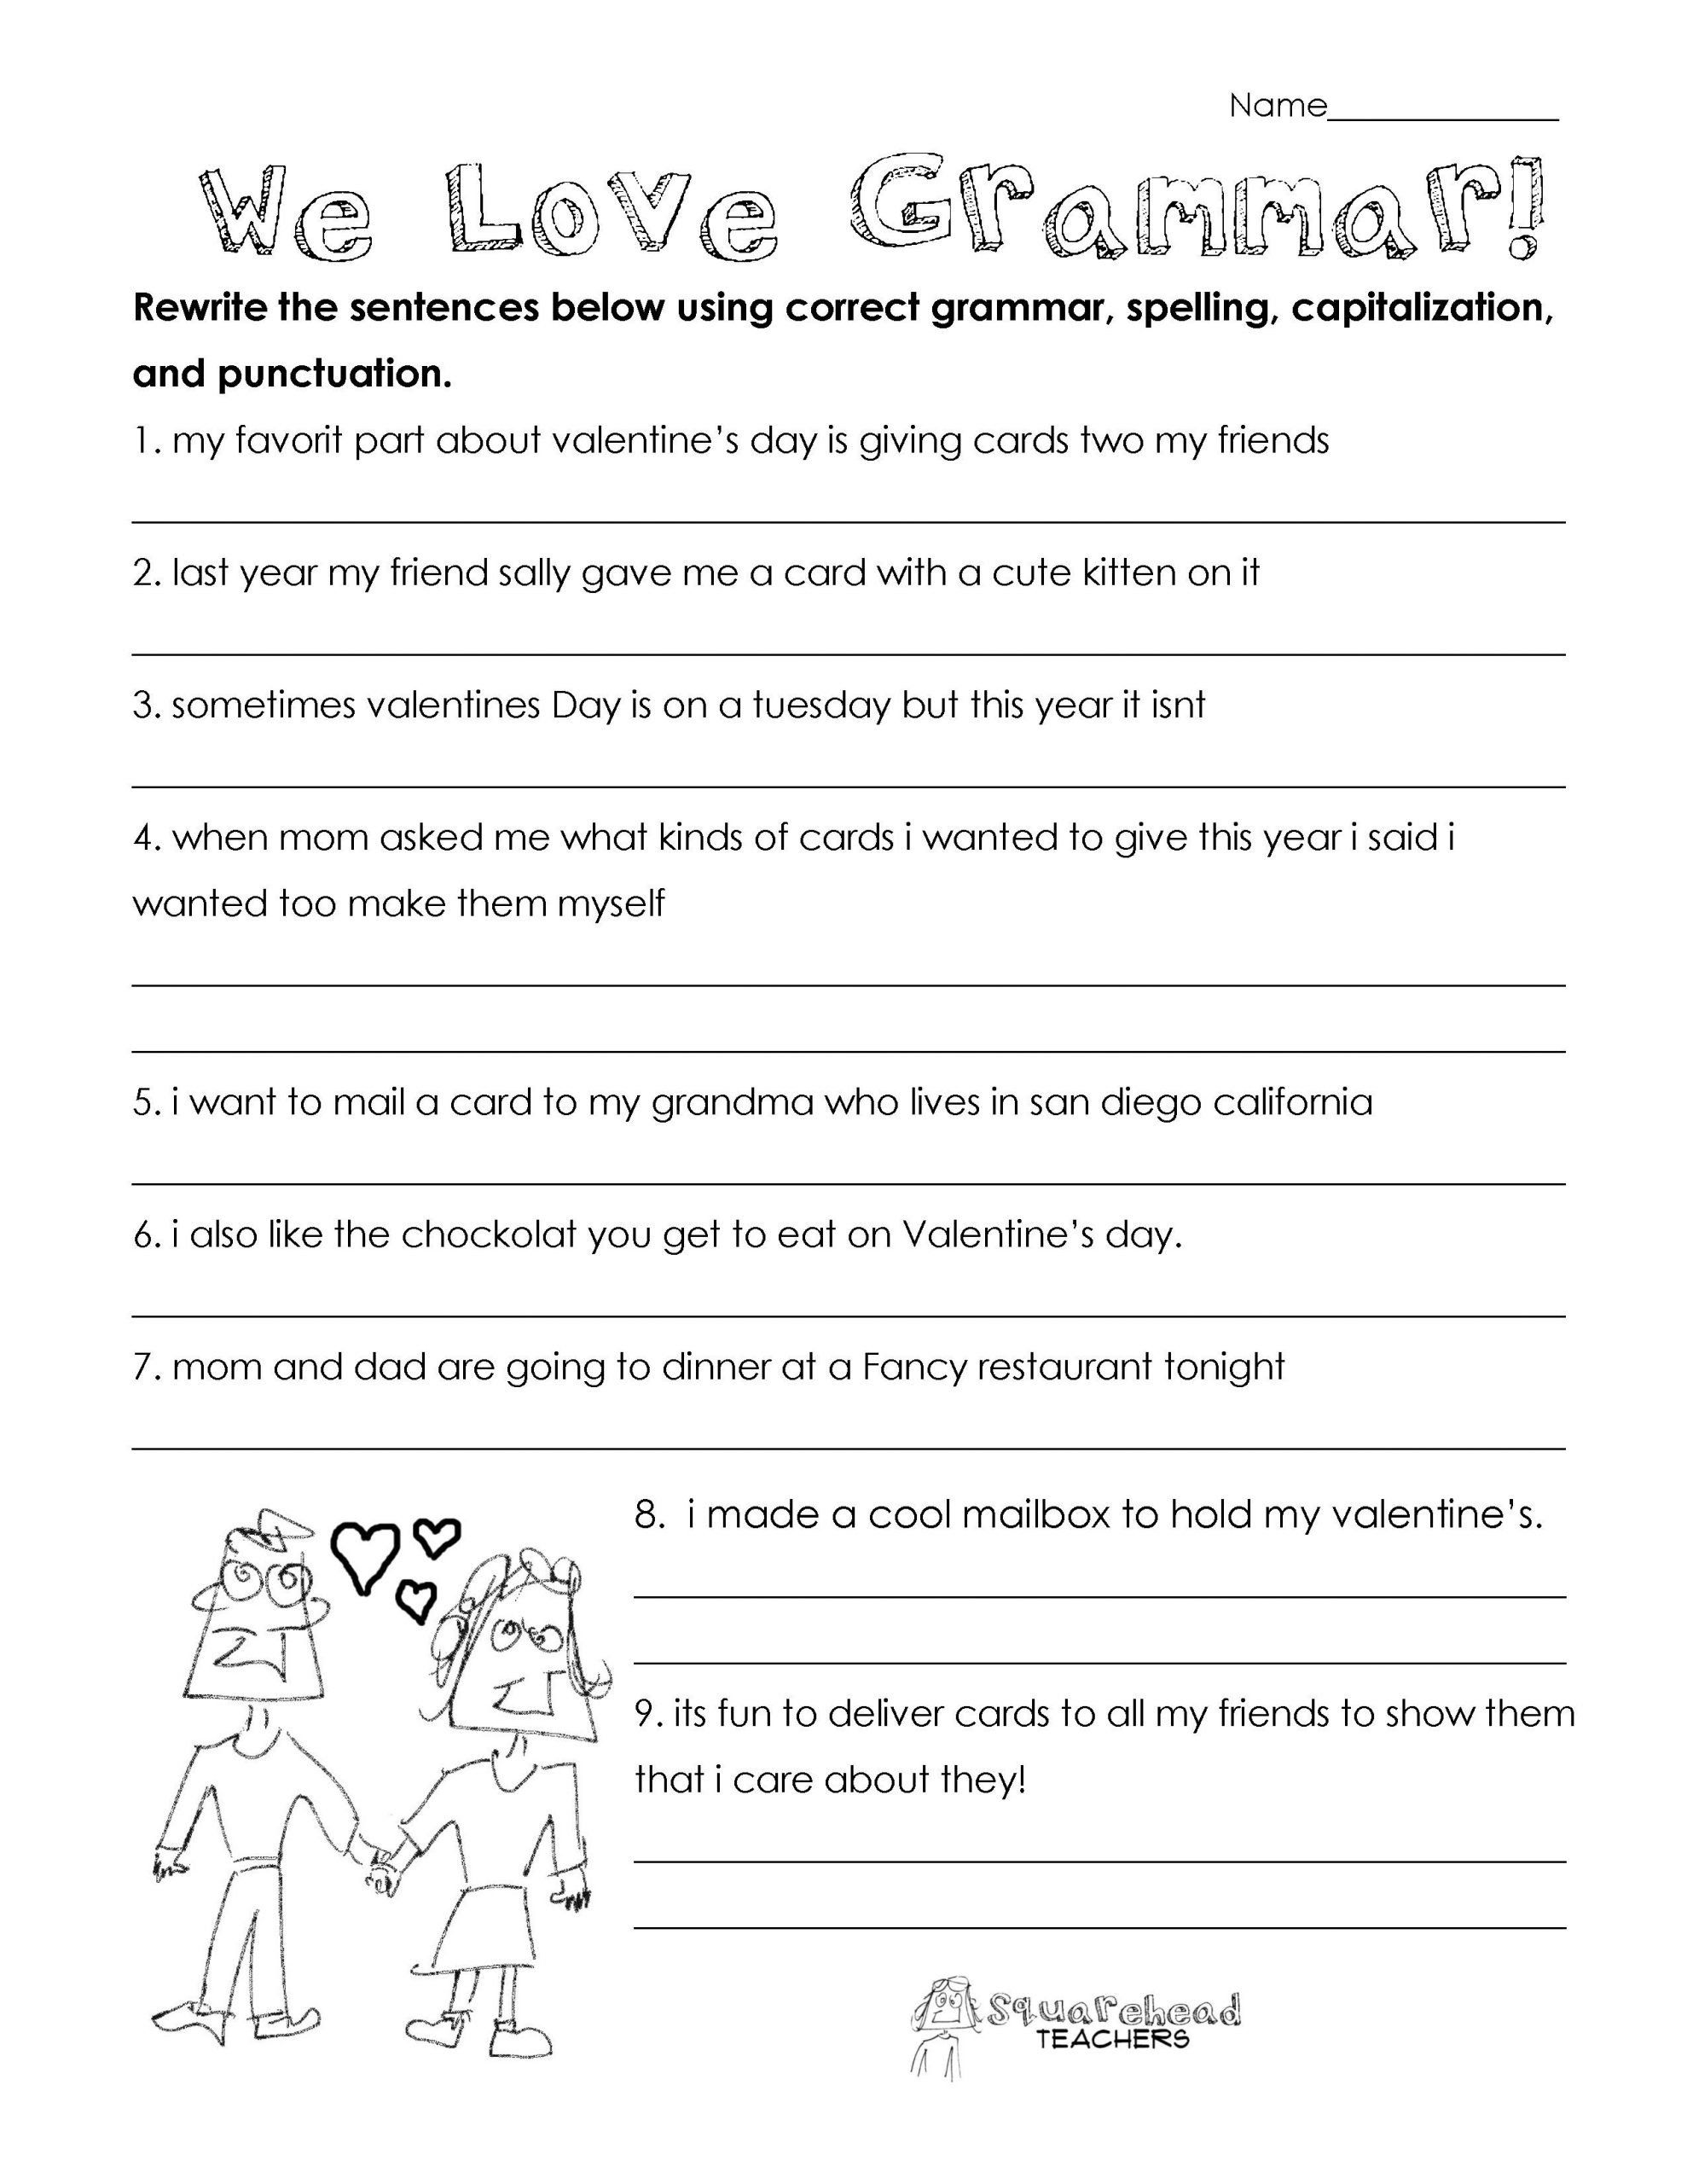 Grammar Worksheet 3rd Grade Valentine S Day Grammar Free Worksheet For 3rd Grade And Up Grammar Worksheets Free Grammar Worksheet 3rd Grade Math Worksheets